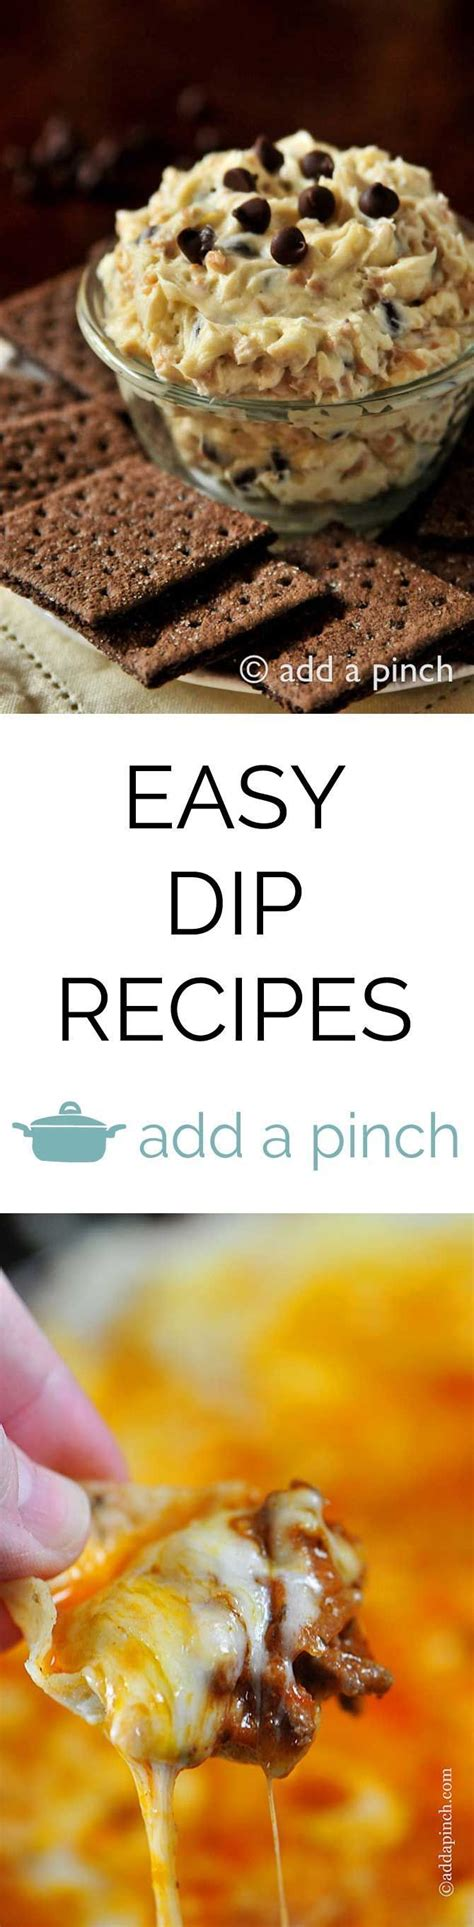 easy dip recipes tailgating dips and cooking